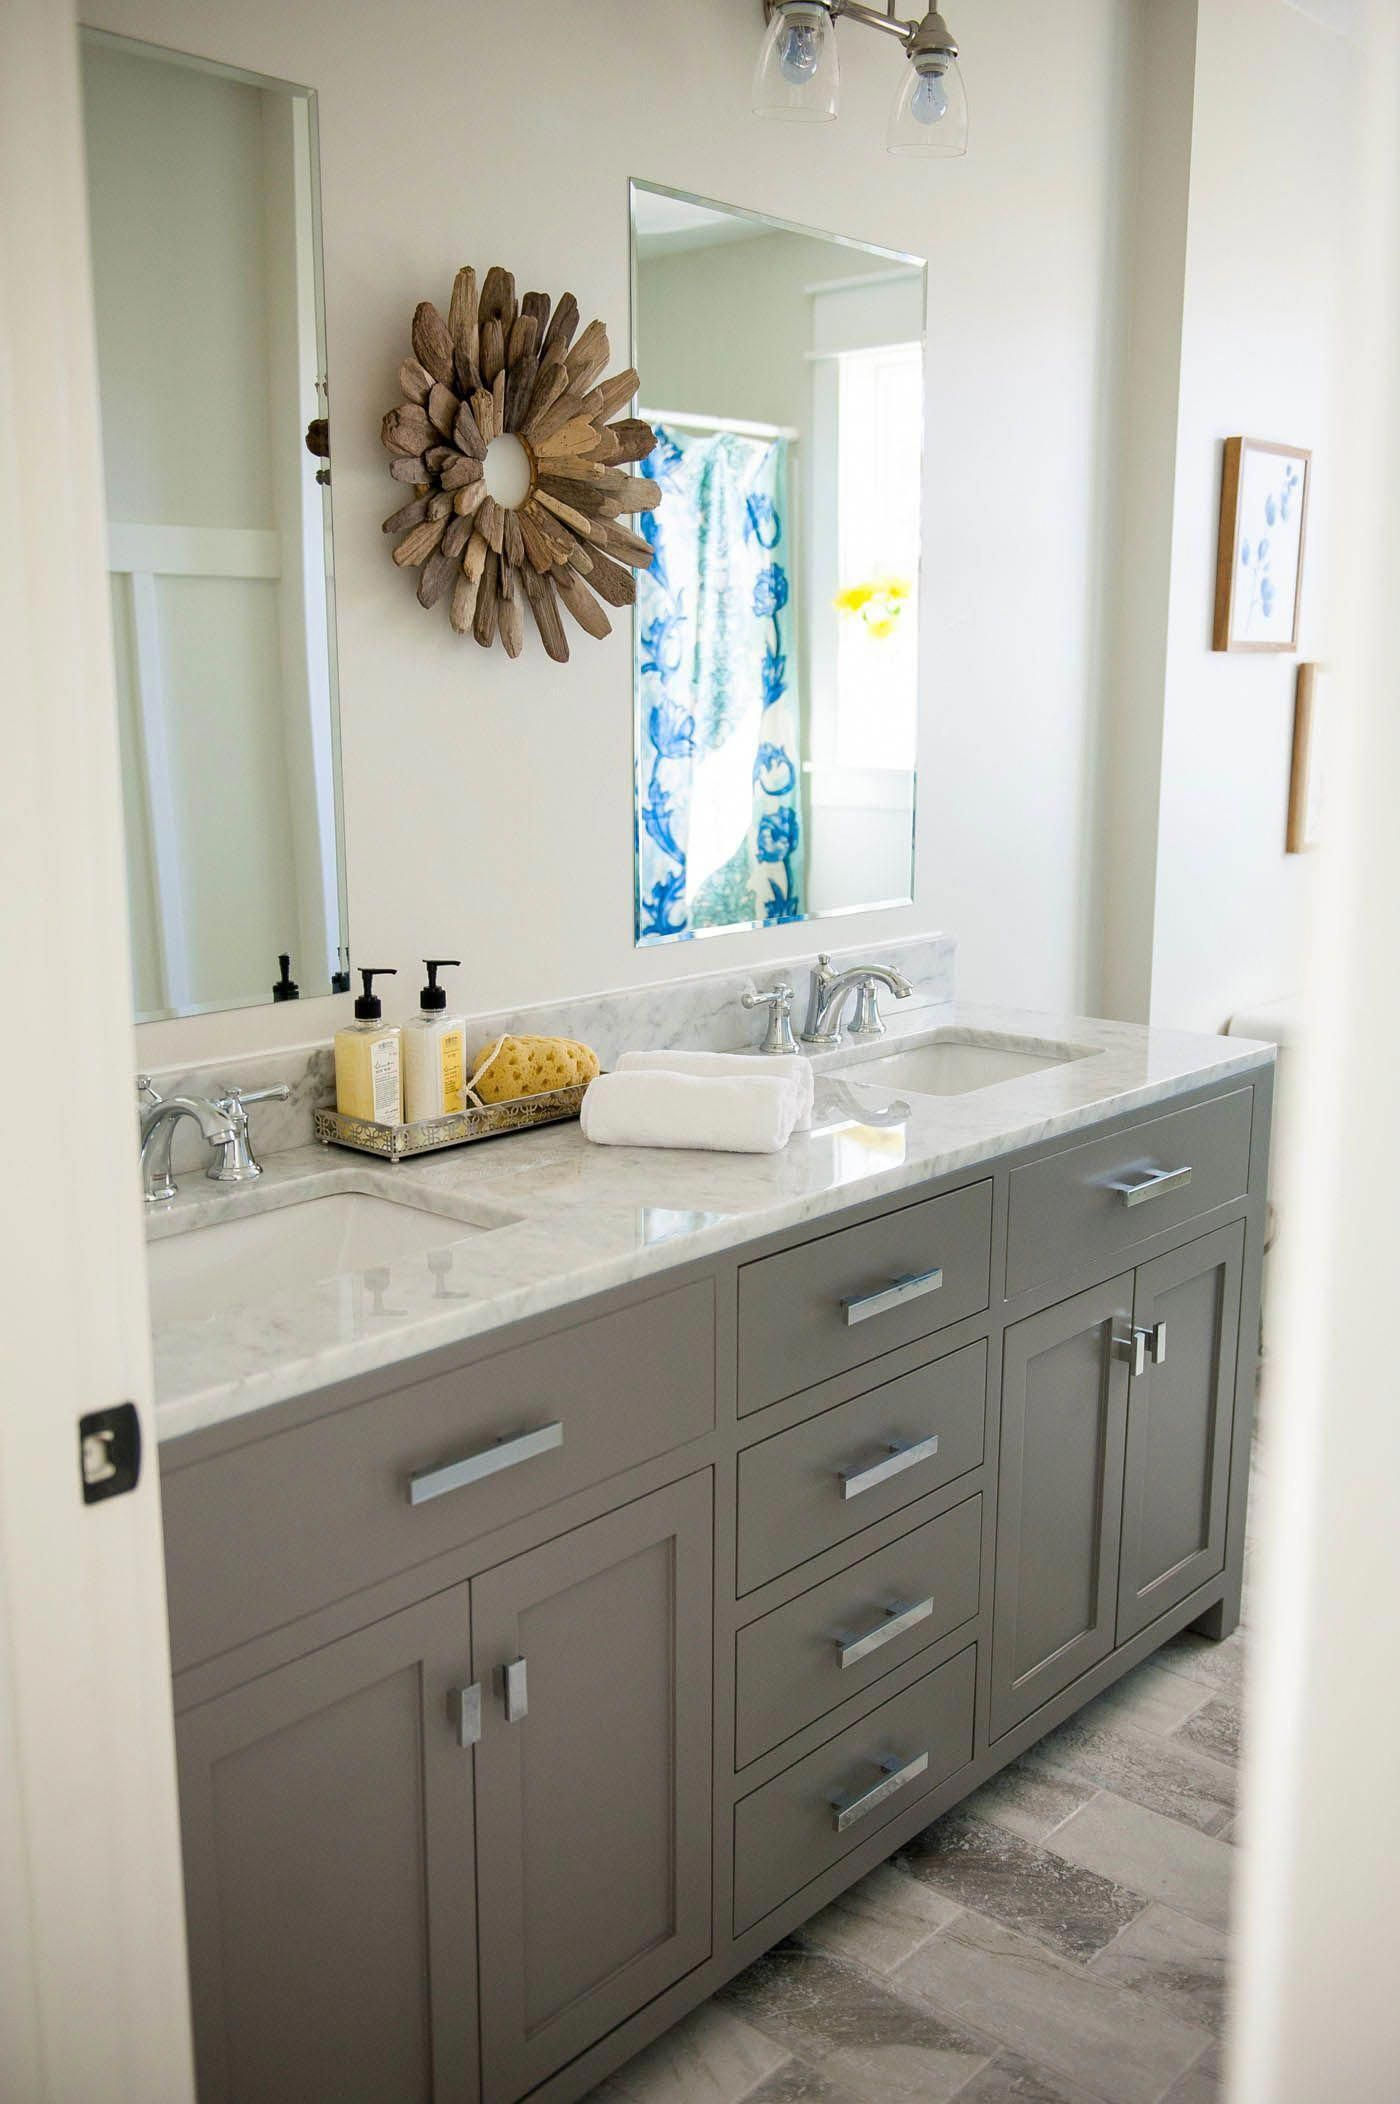 Gray Bathroom Vanity Find Out Where To Buy This Exact Vanity Online Click To See Our Bathroom Vanity Double Vanity Bathroom Grey Bathroom Vanity Sink Remodel